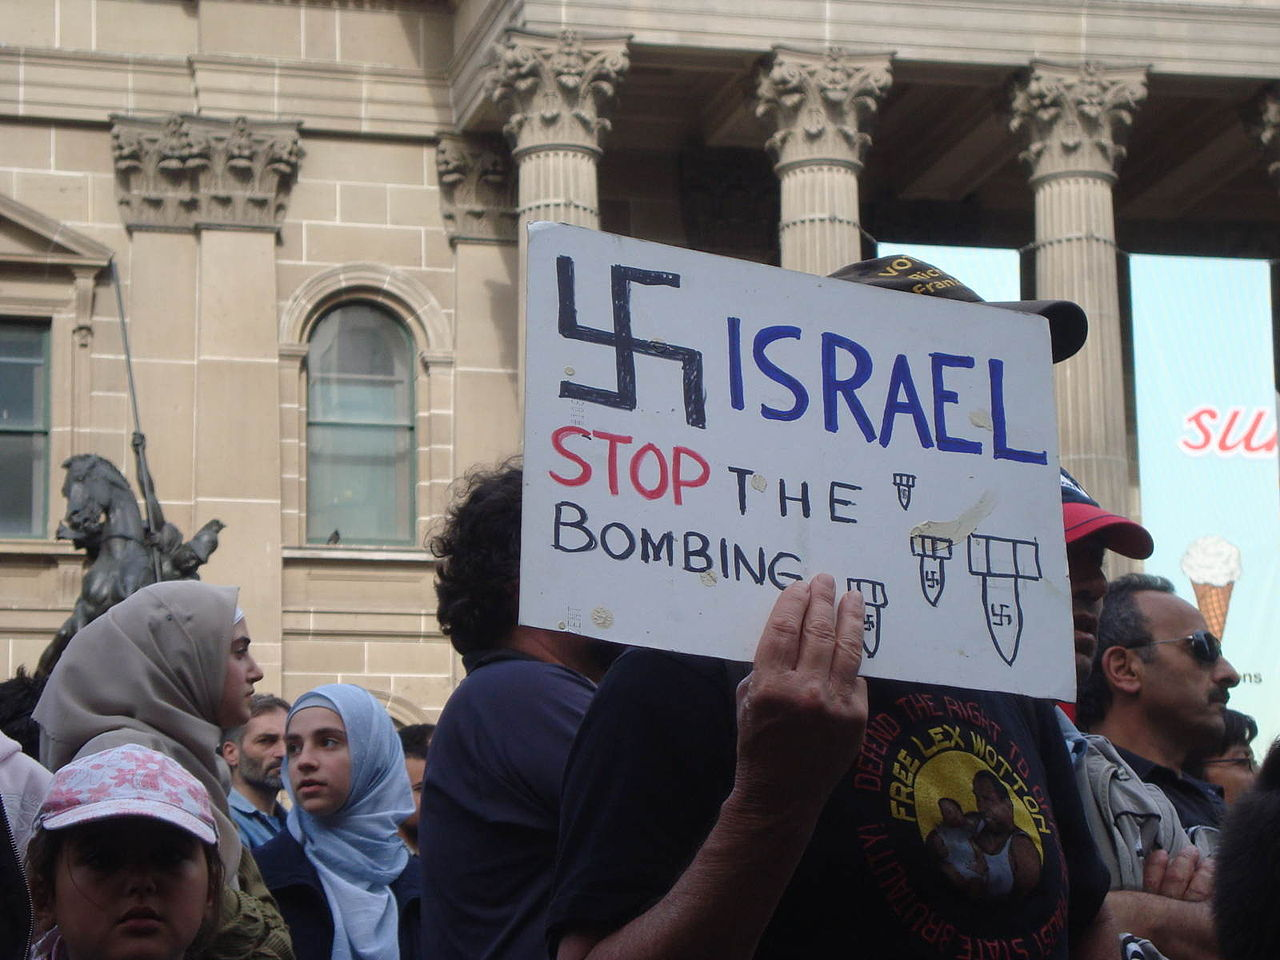 The New Jew-Hatred: Right and Left